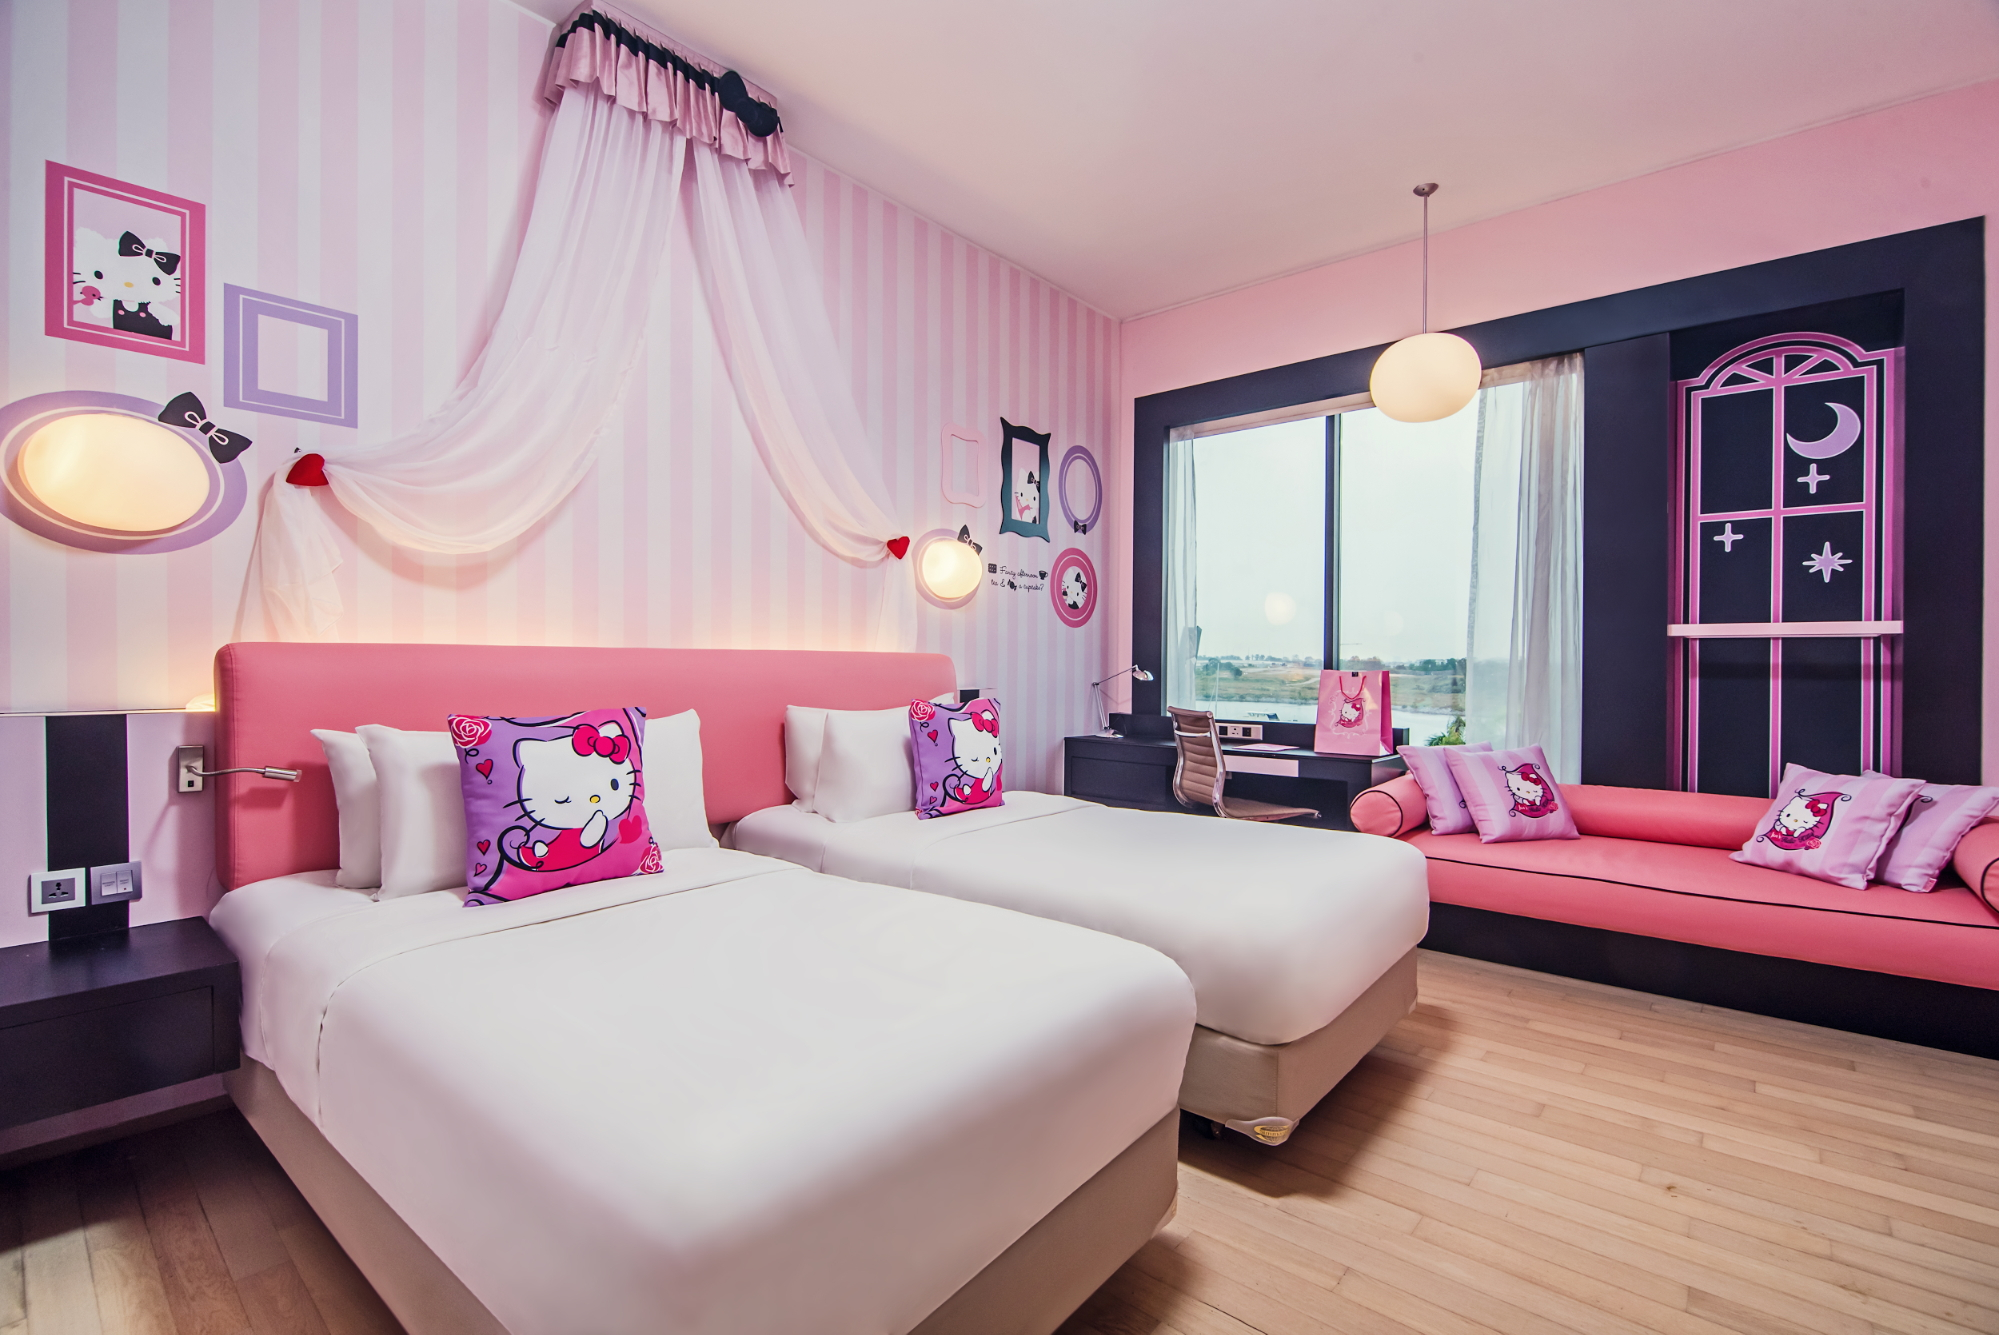 11 jb hotels near the causeway from 41 night for 2d1n shopping marathons